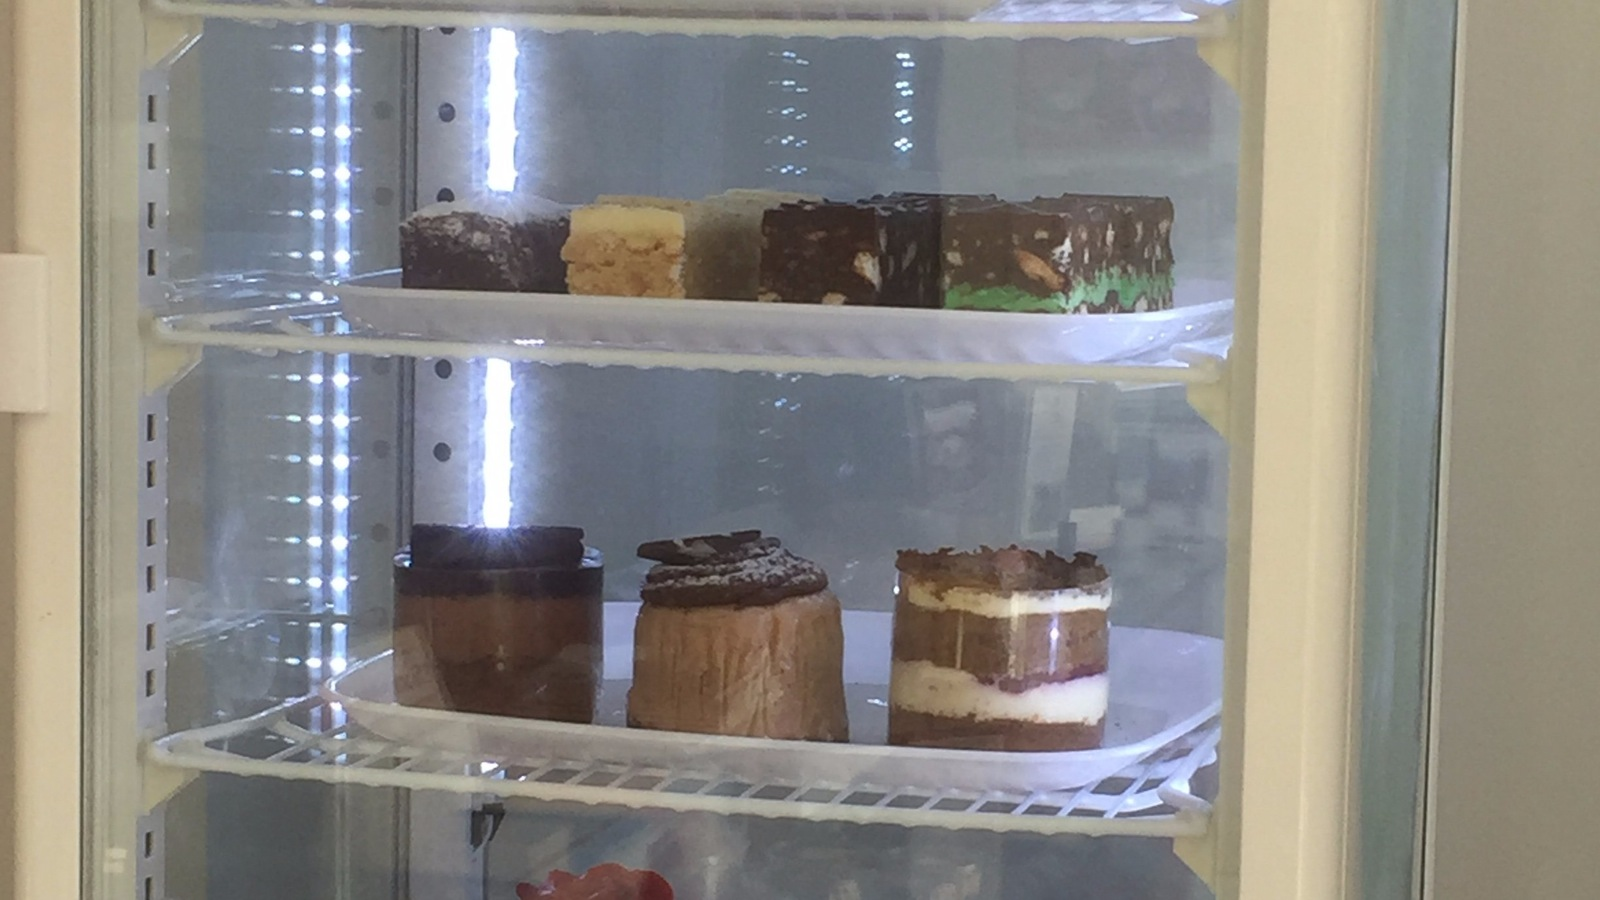 Cakes and slices